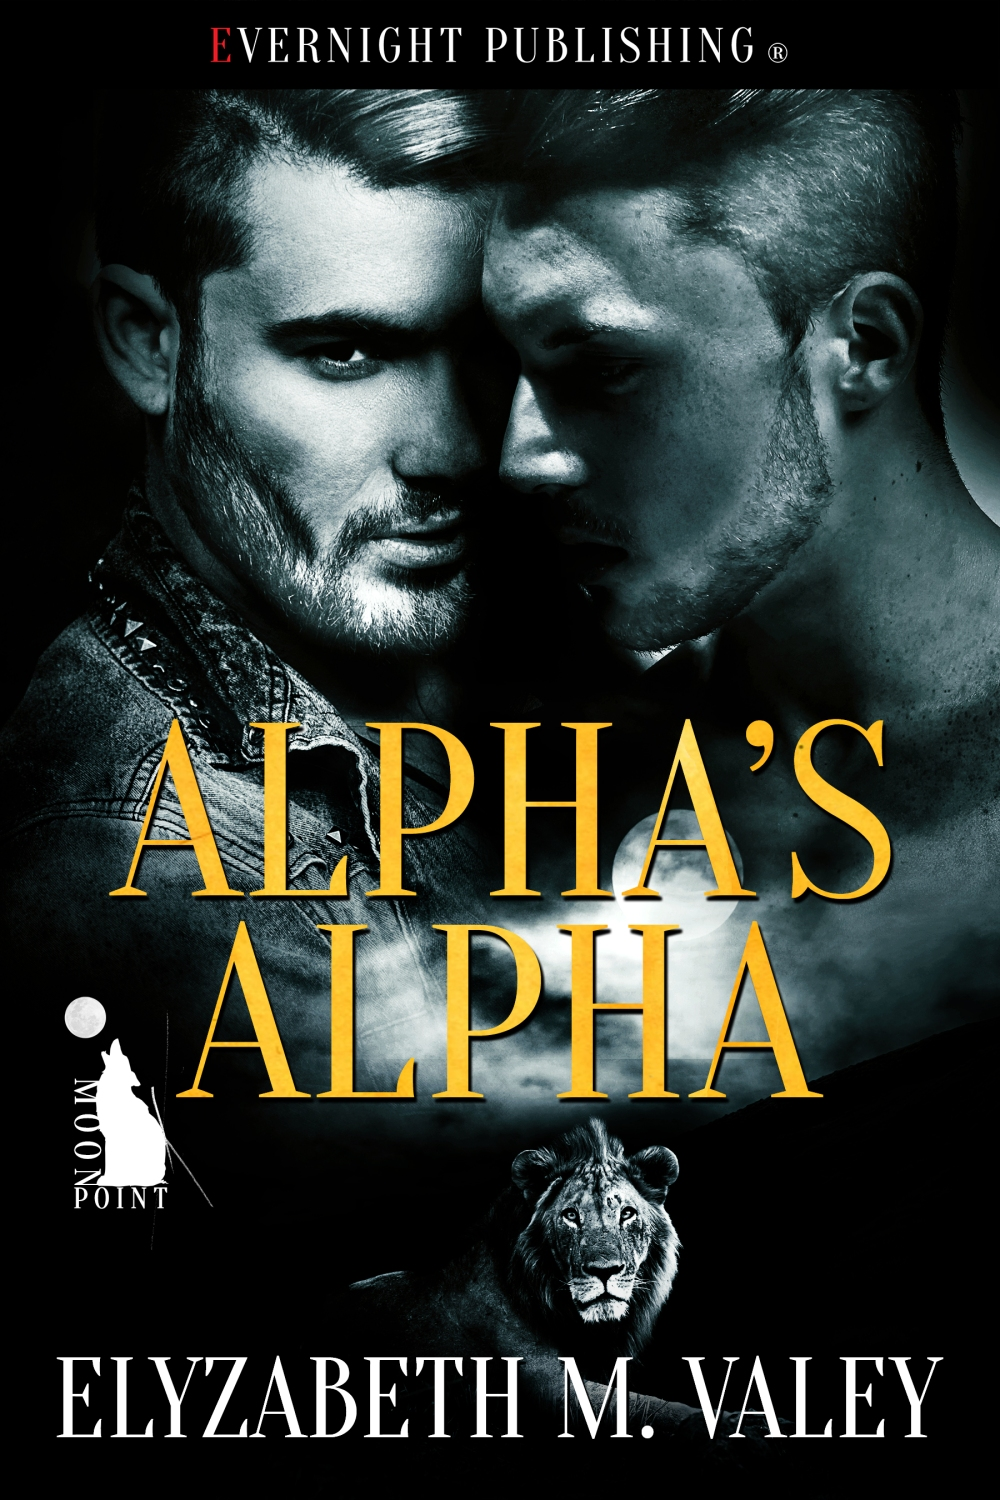 Alpha_s-Alpha-evernightpublishing-OCT2017-finalimage